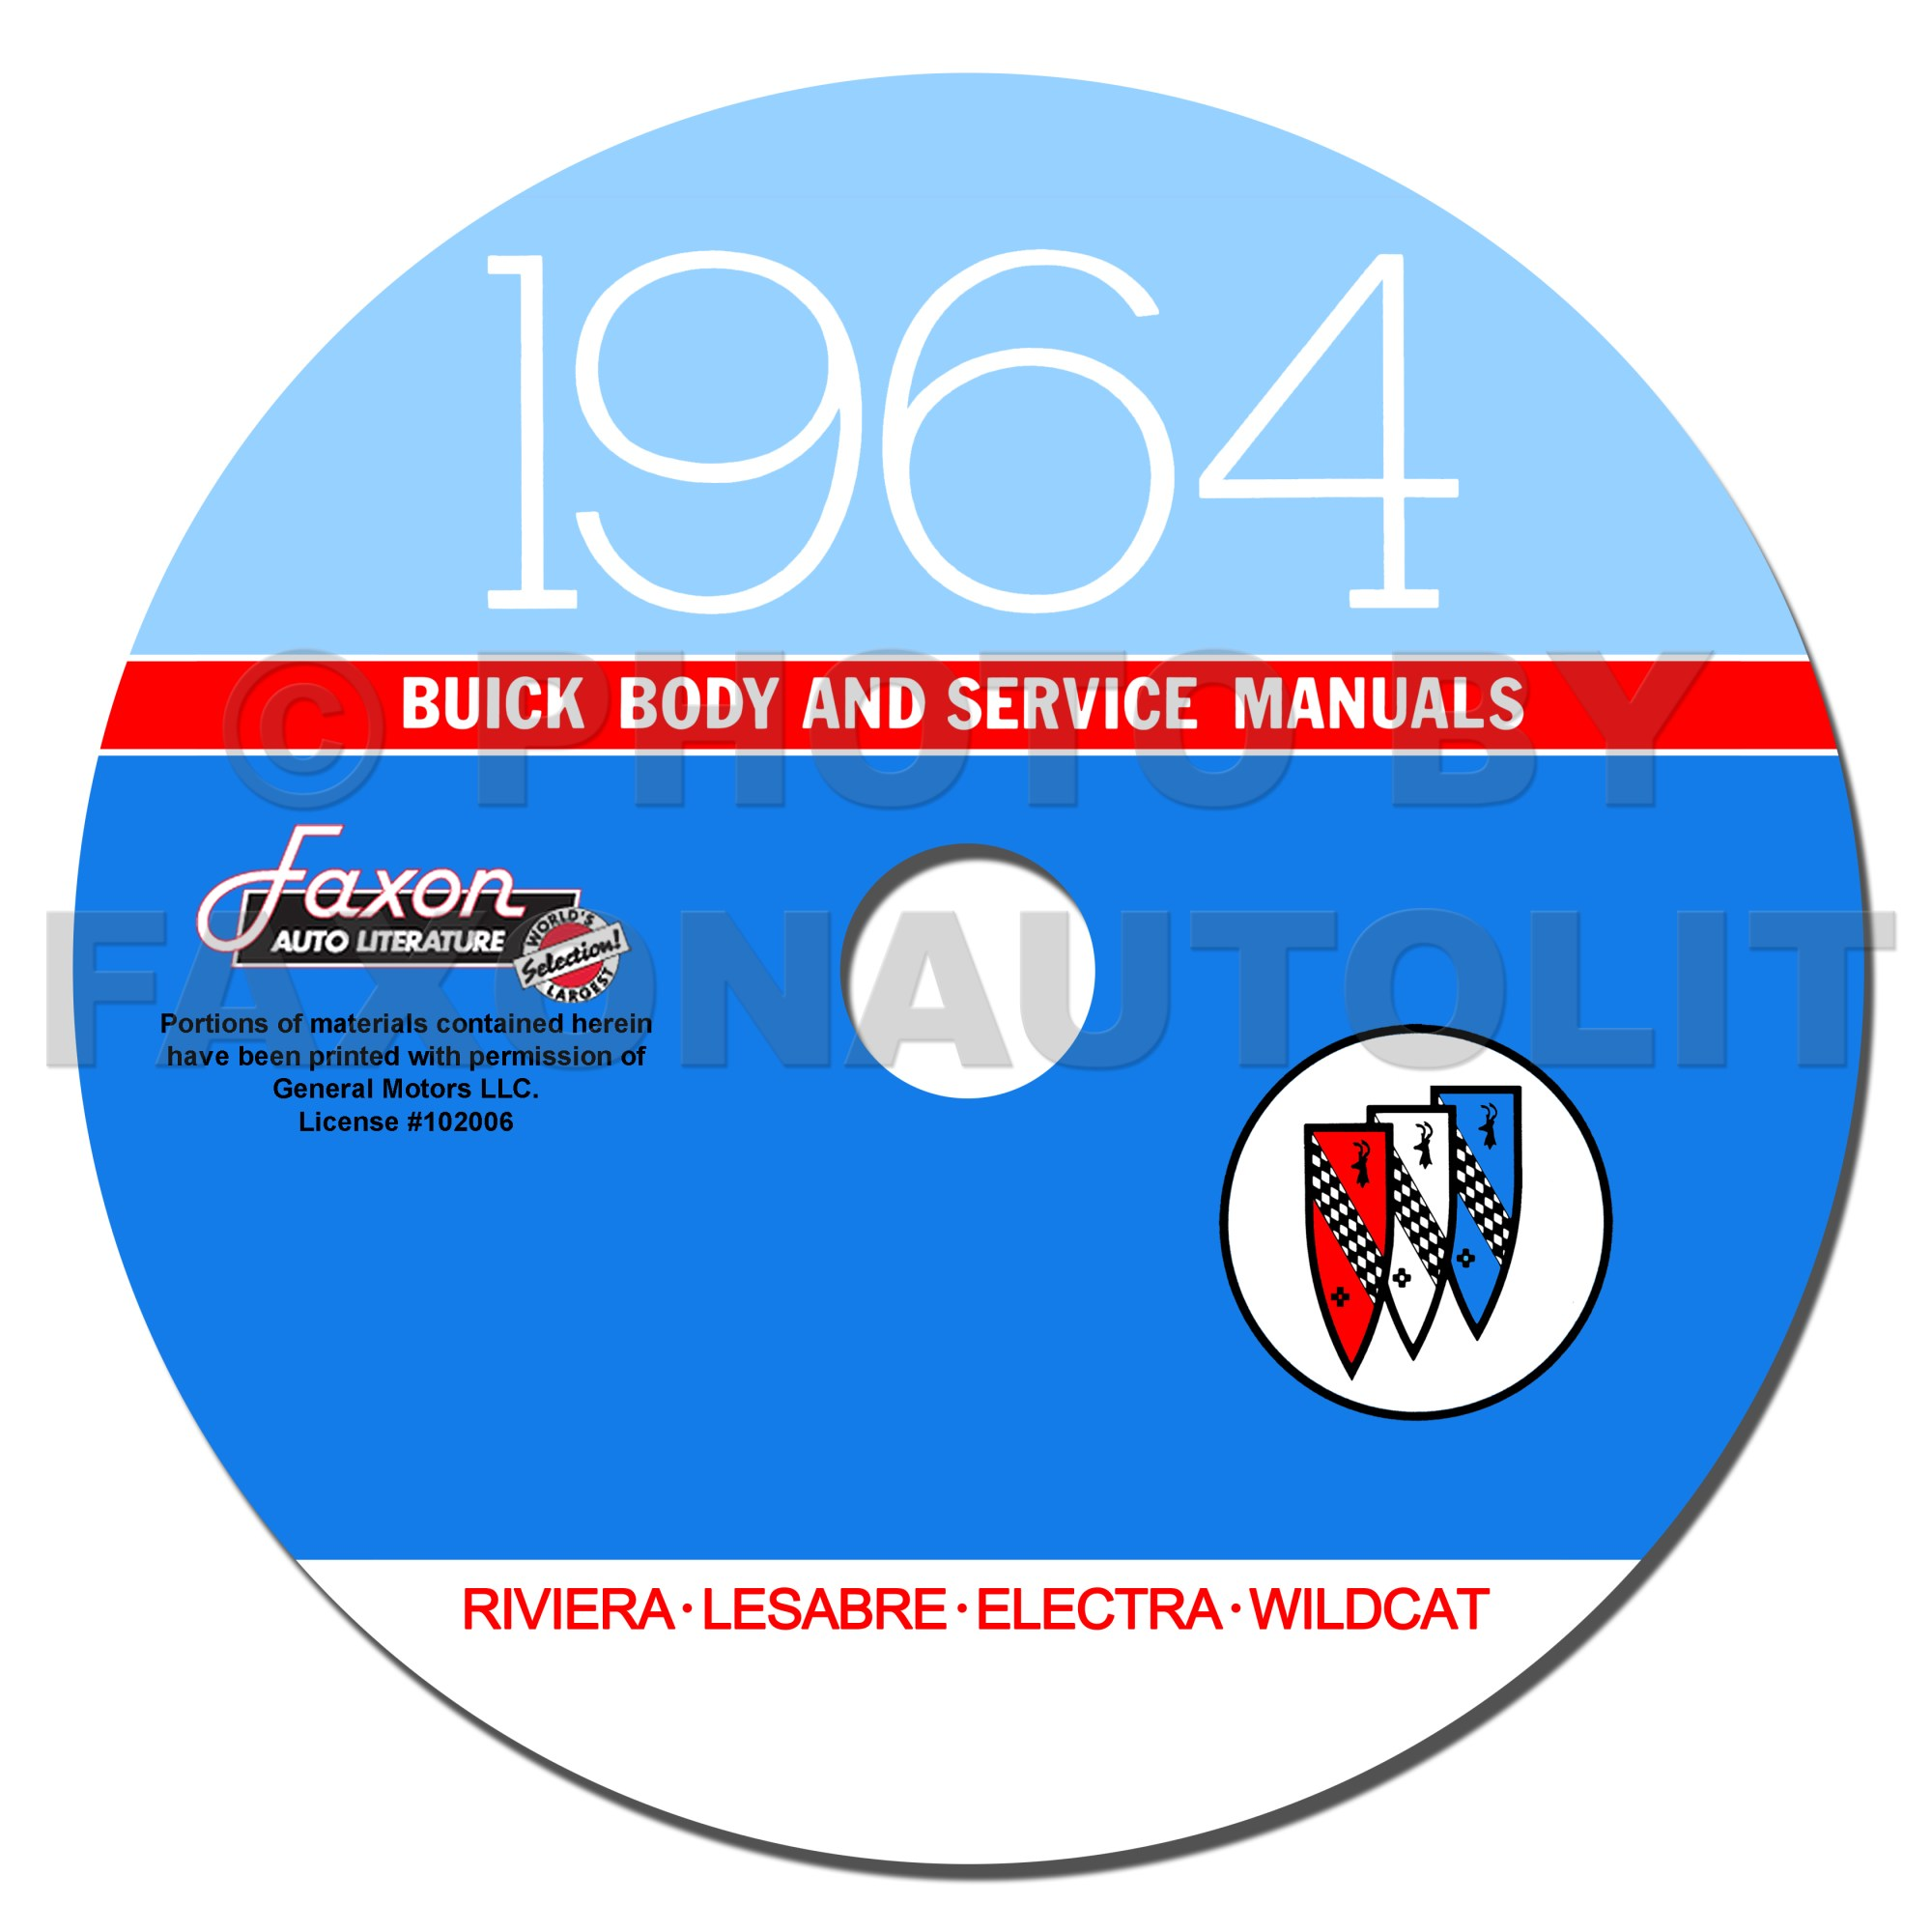 hight resolution of 1964 buick cd rom shop manual amp body manual